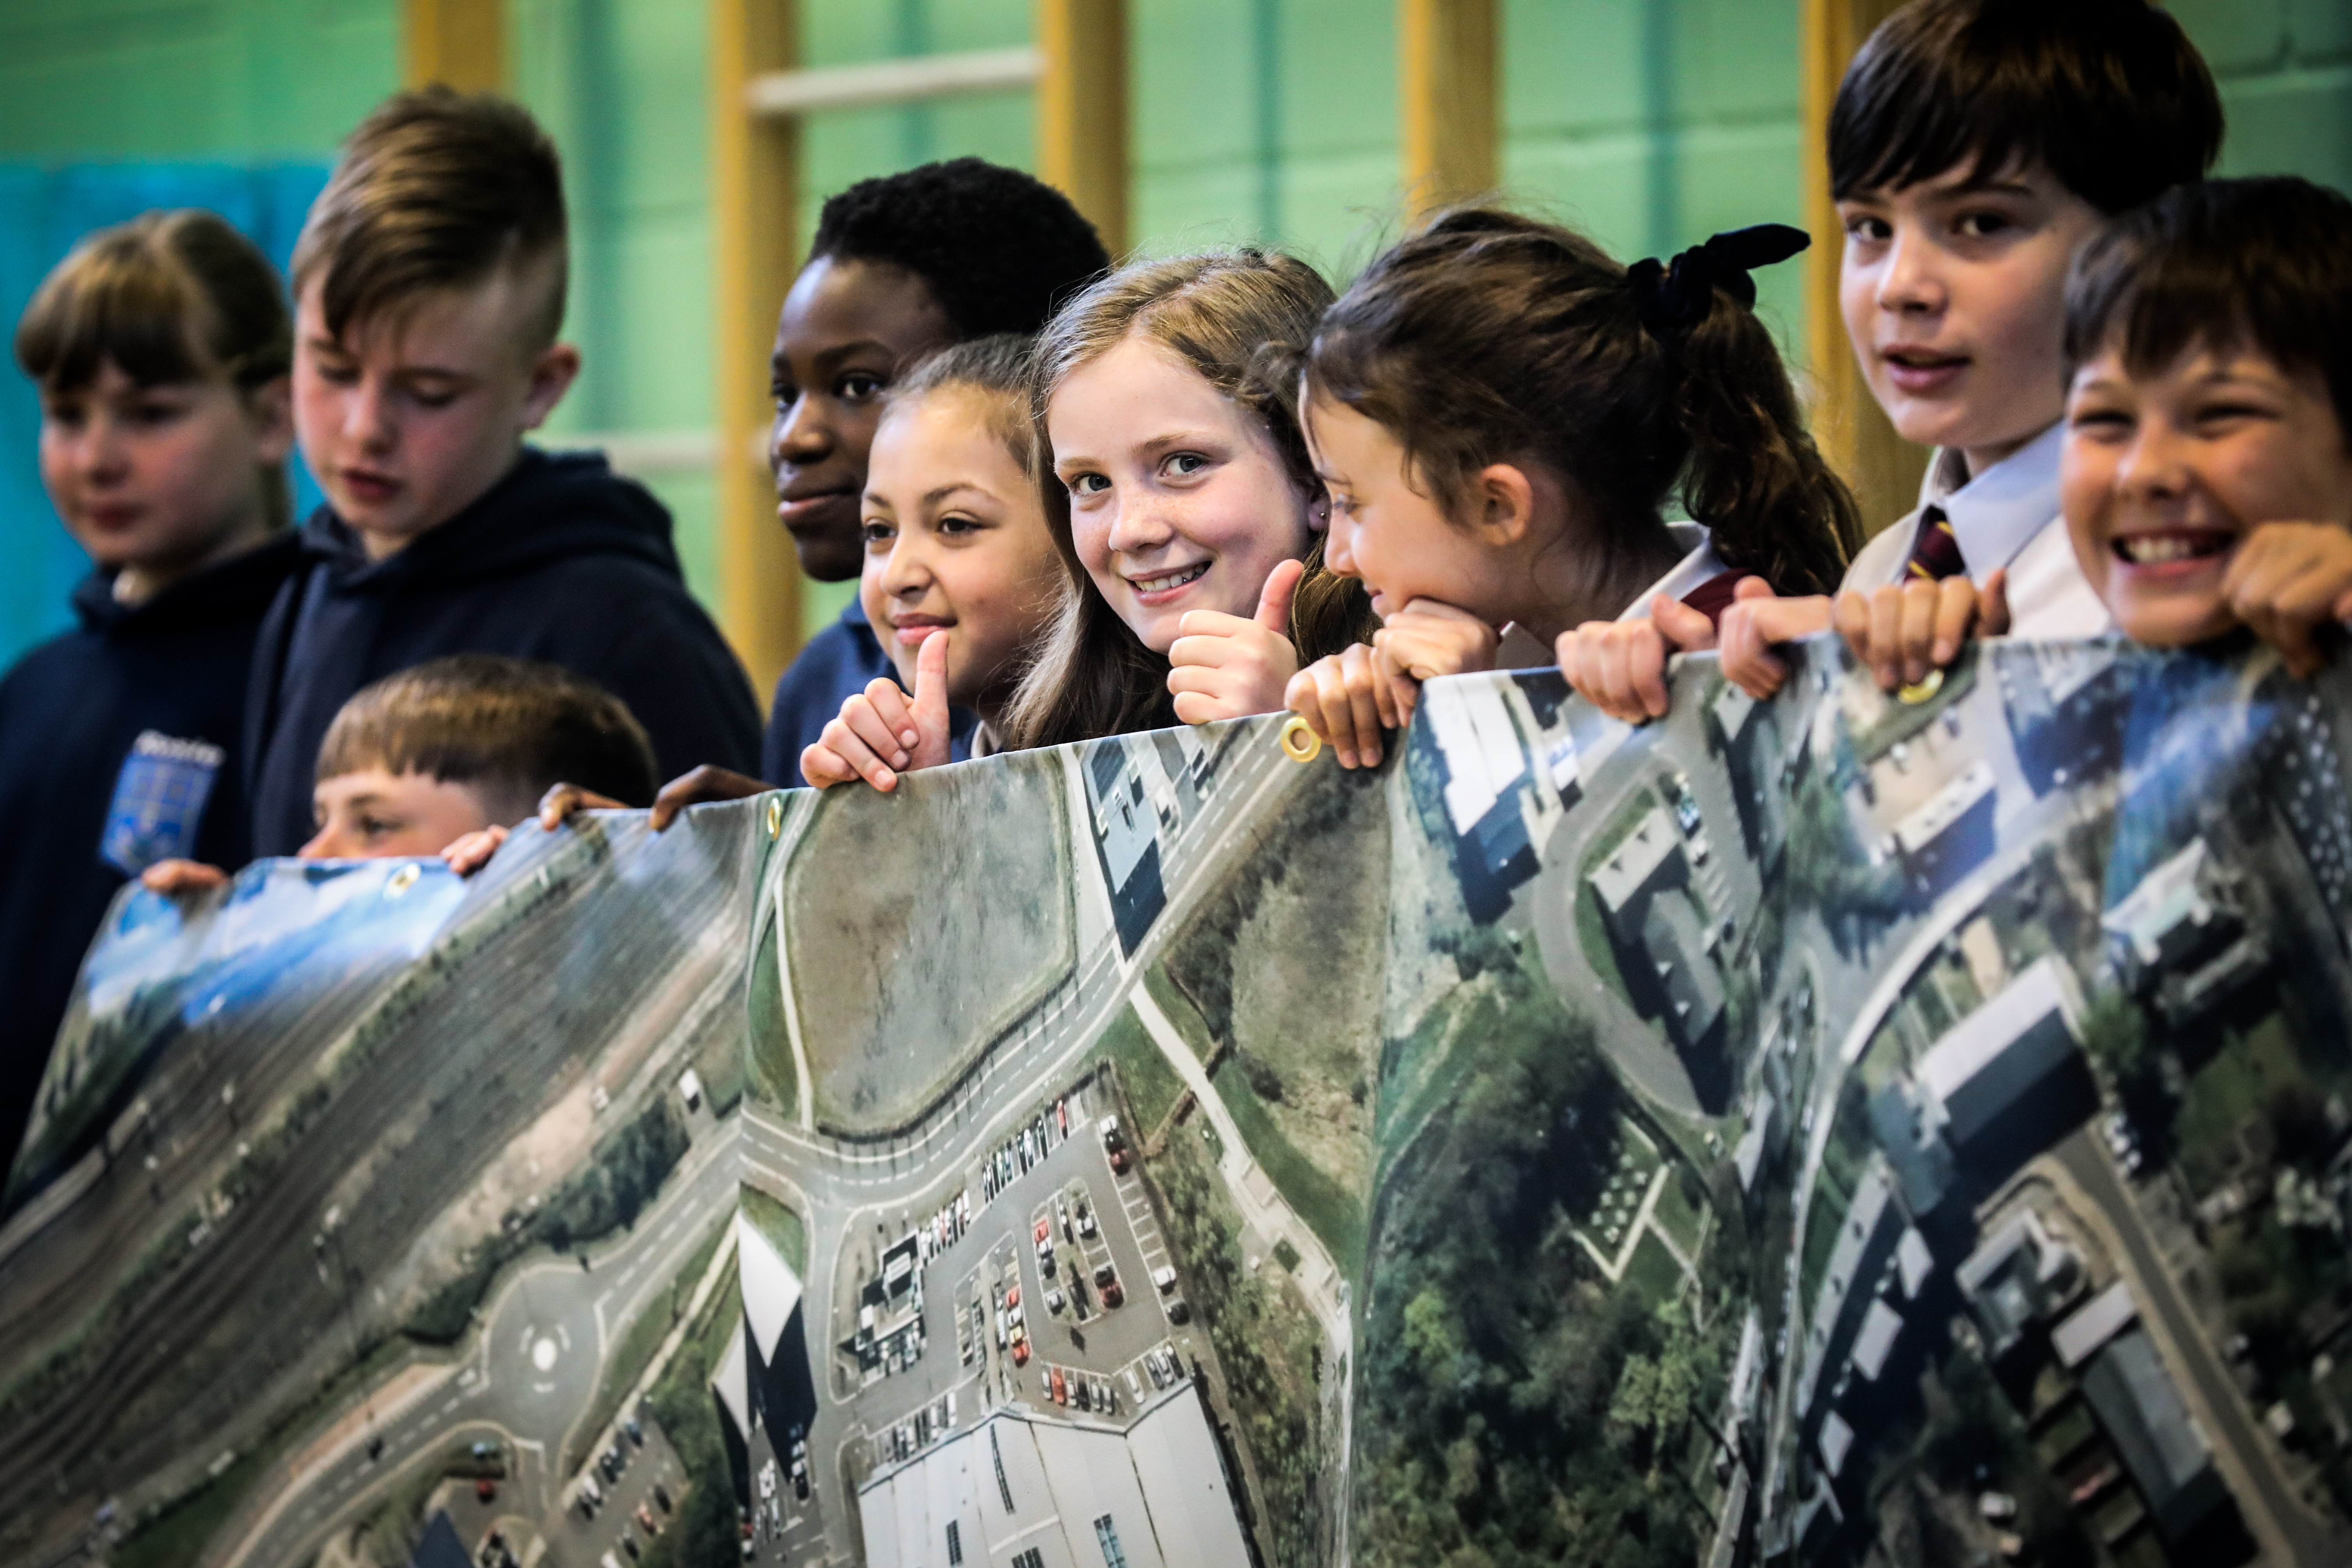 Pupils from the schools look at the map of Perth Road.